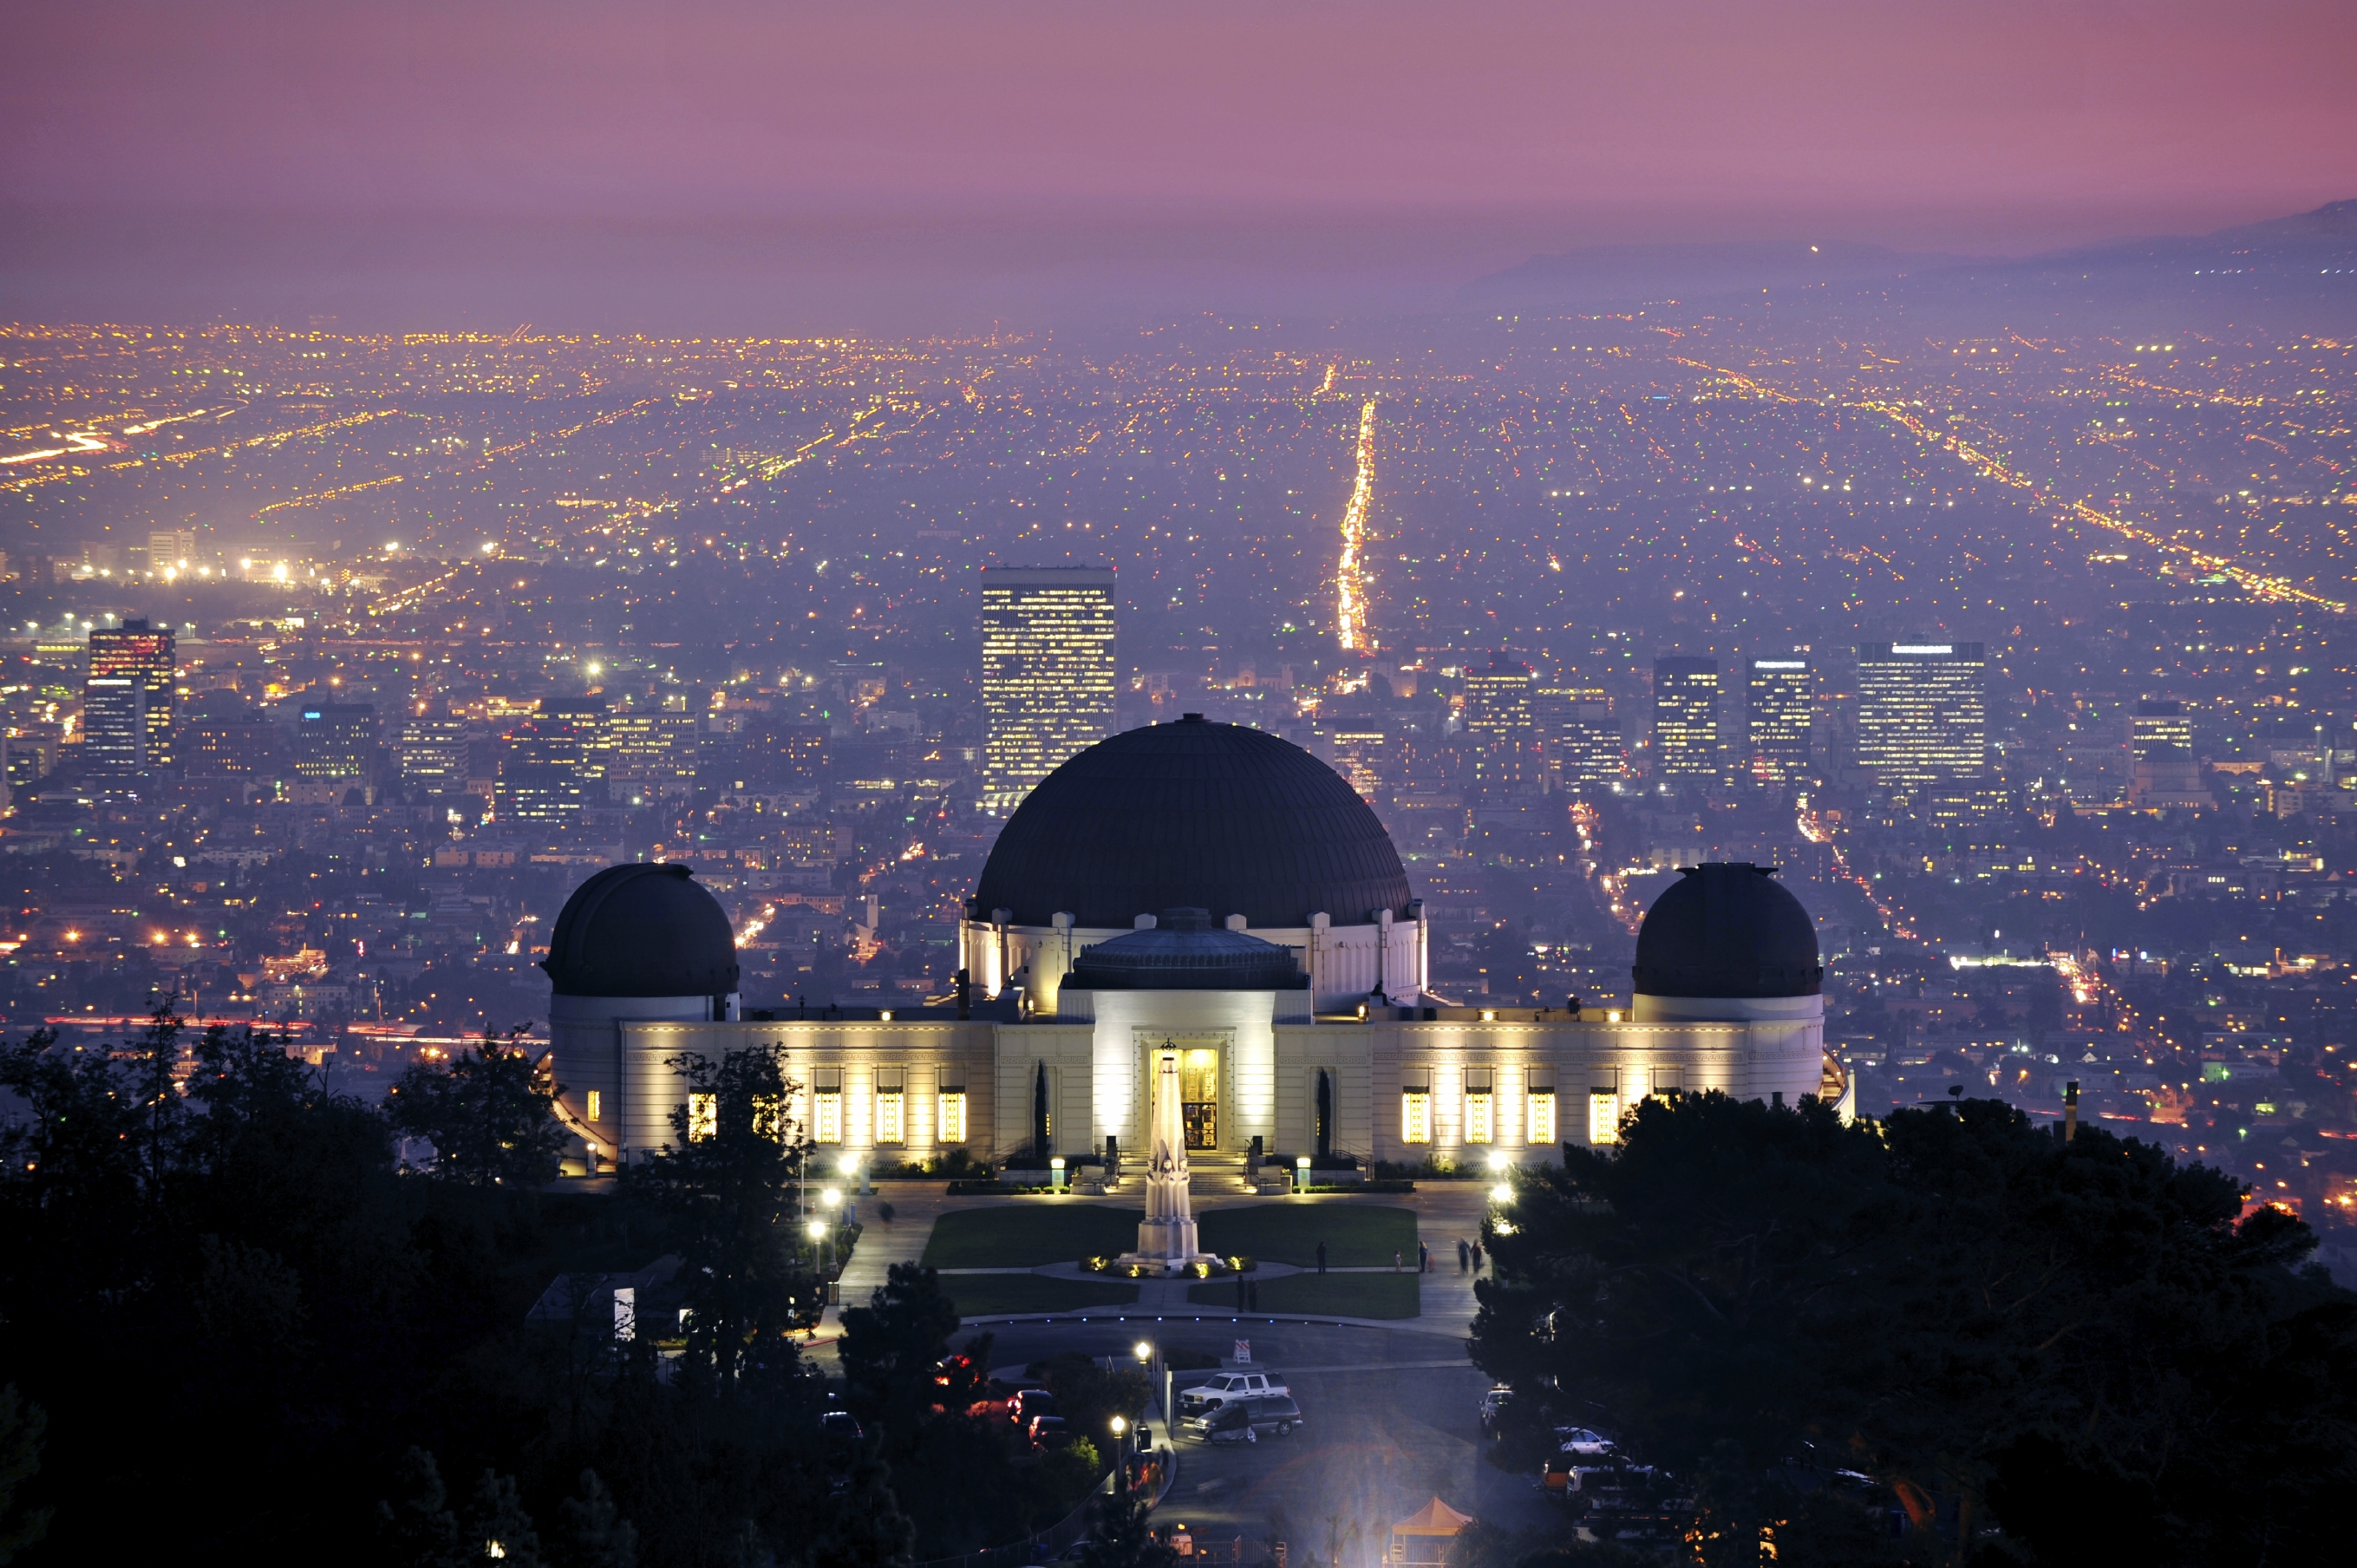 griffith-observatory-dicas-viagem-los-angeles-silver-lake-lacma-hello-kittty-restaurante-california-travel-tips-hollywood-sign